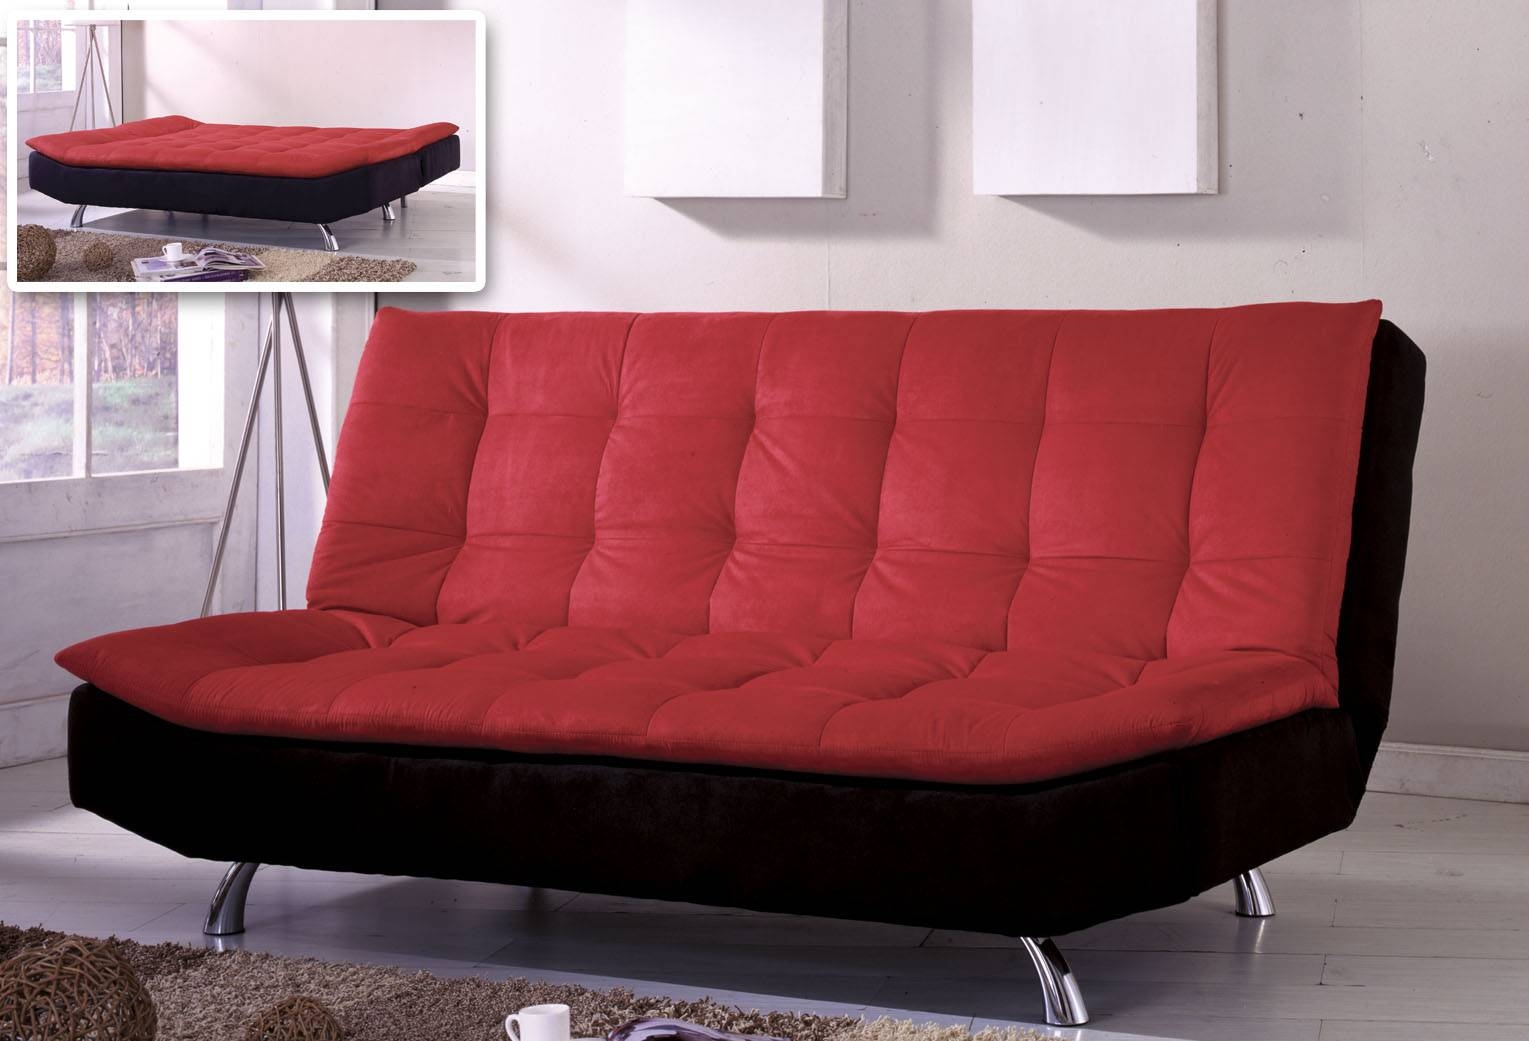 Futon Sofa Bed Cheap   Best Home Furniture Decoration In Futon Couch Beds (View 2 of 15)